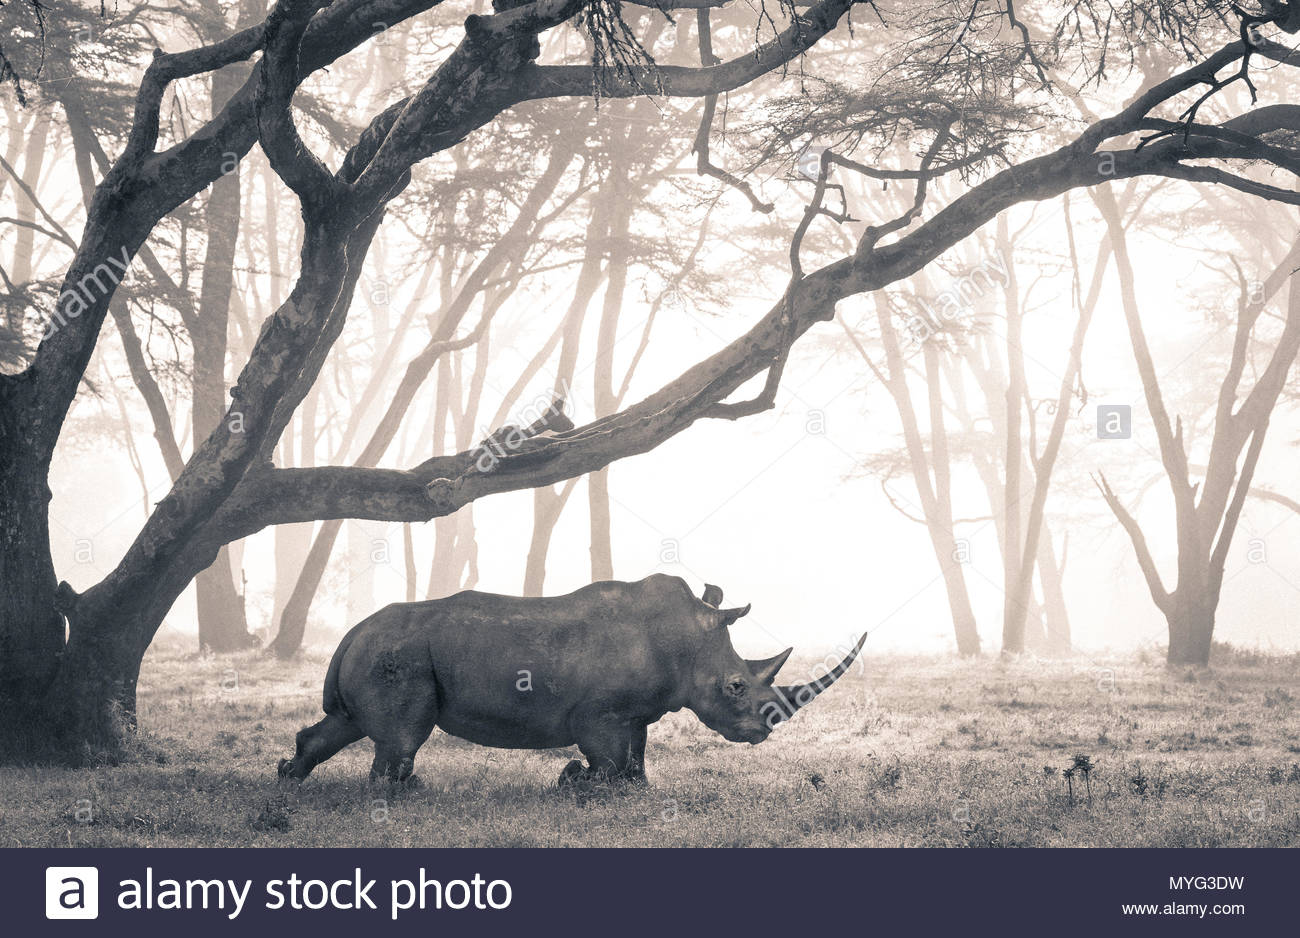 A Southern White Rhino moves through a mist-shrouded fever tree forest. - Stock Image